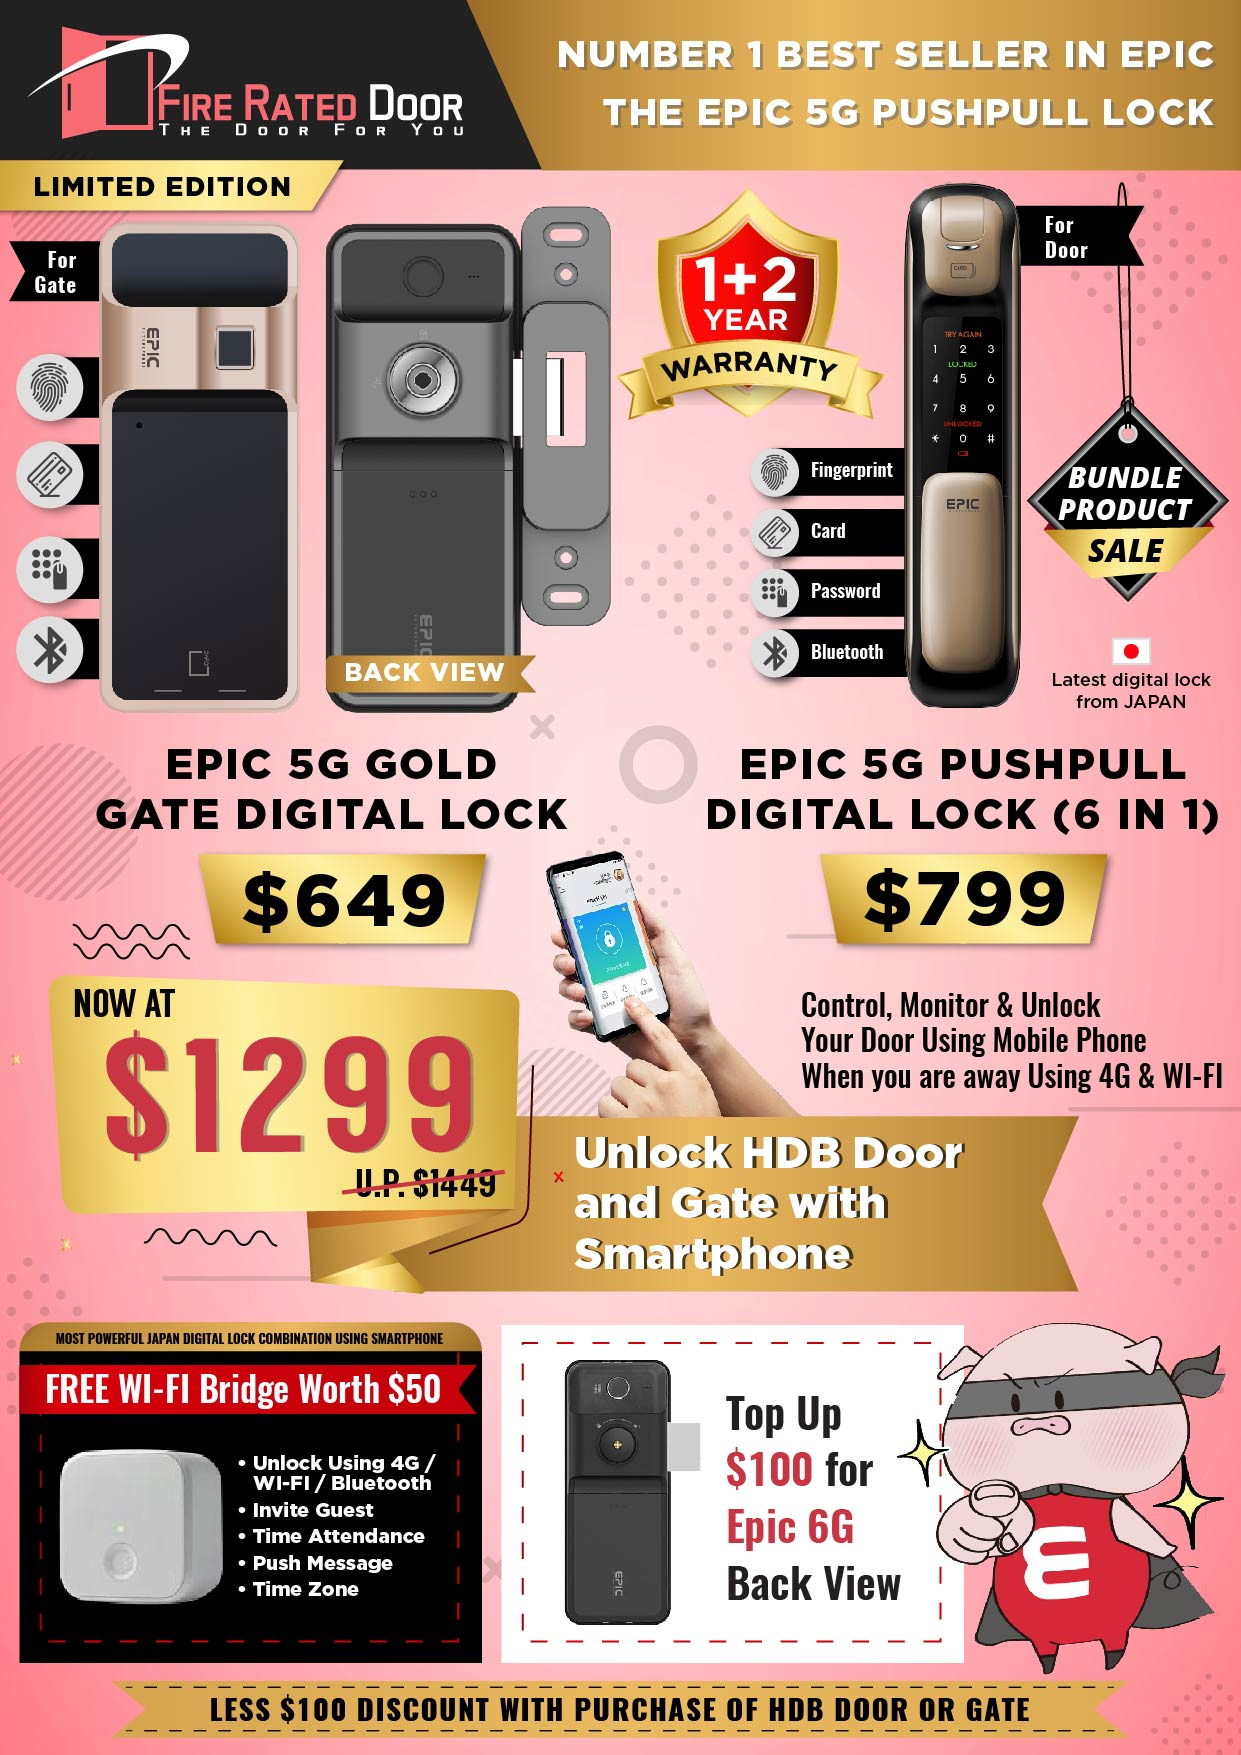 EPIC 5G Gold Gate and 5G Push Pull Digital Lock Promotion